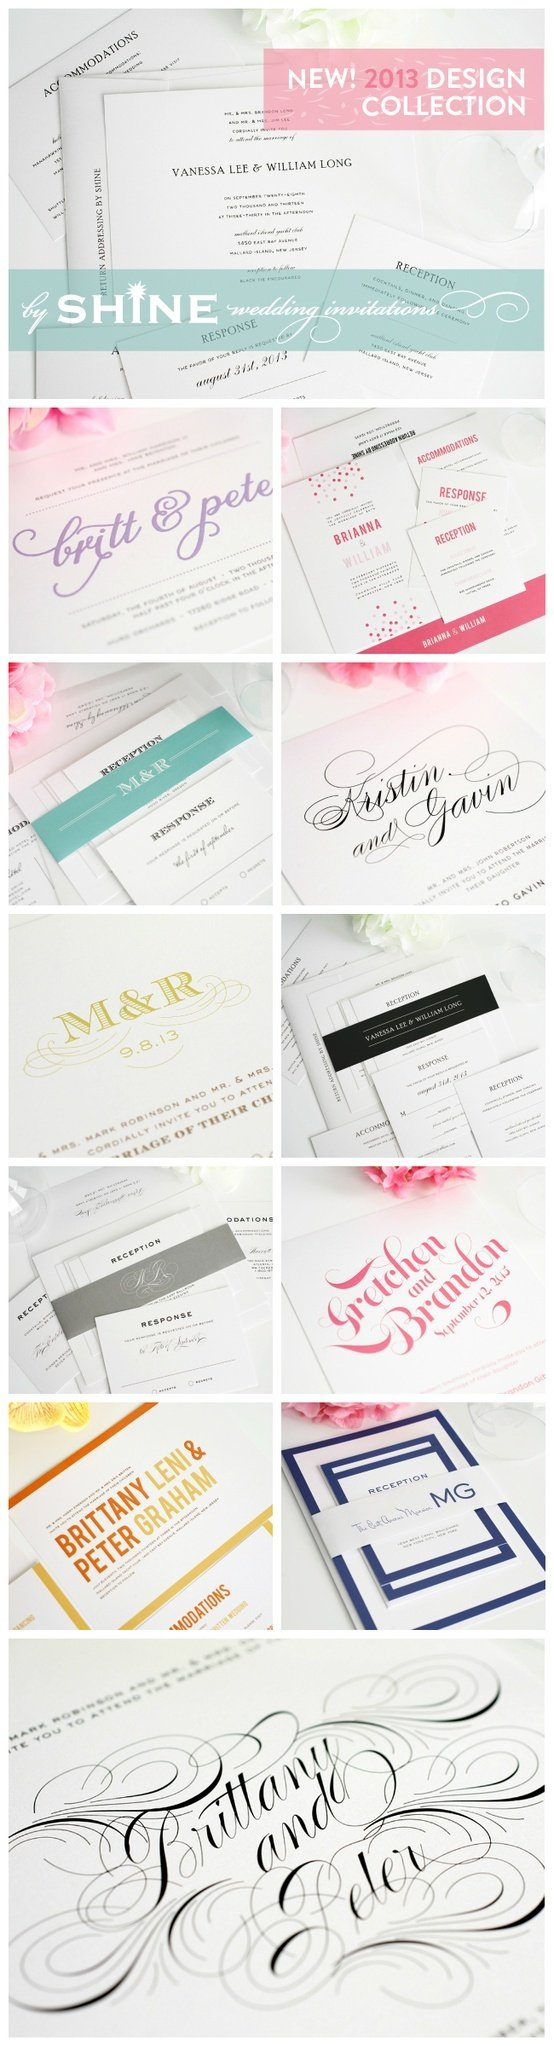 New Wedding Invitations 2013